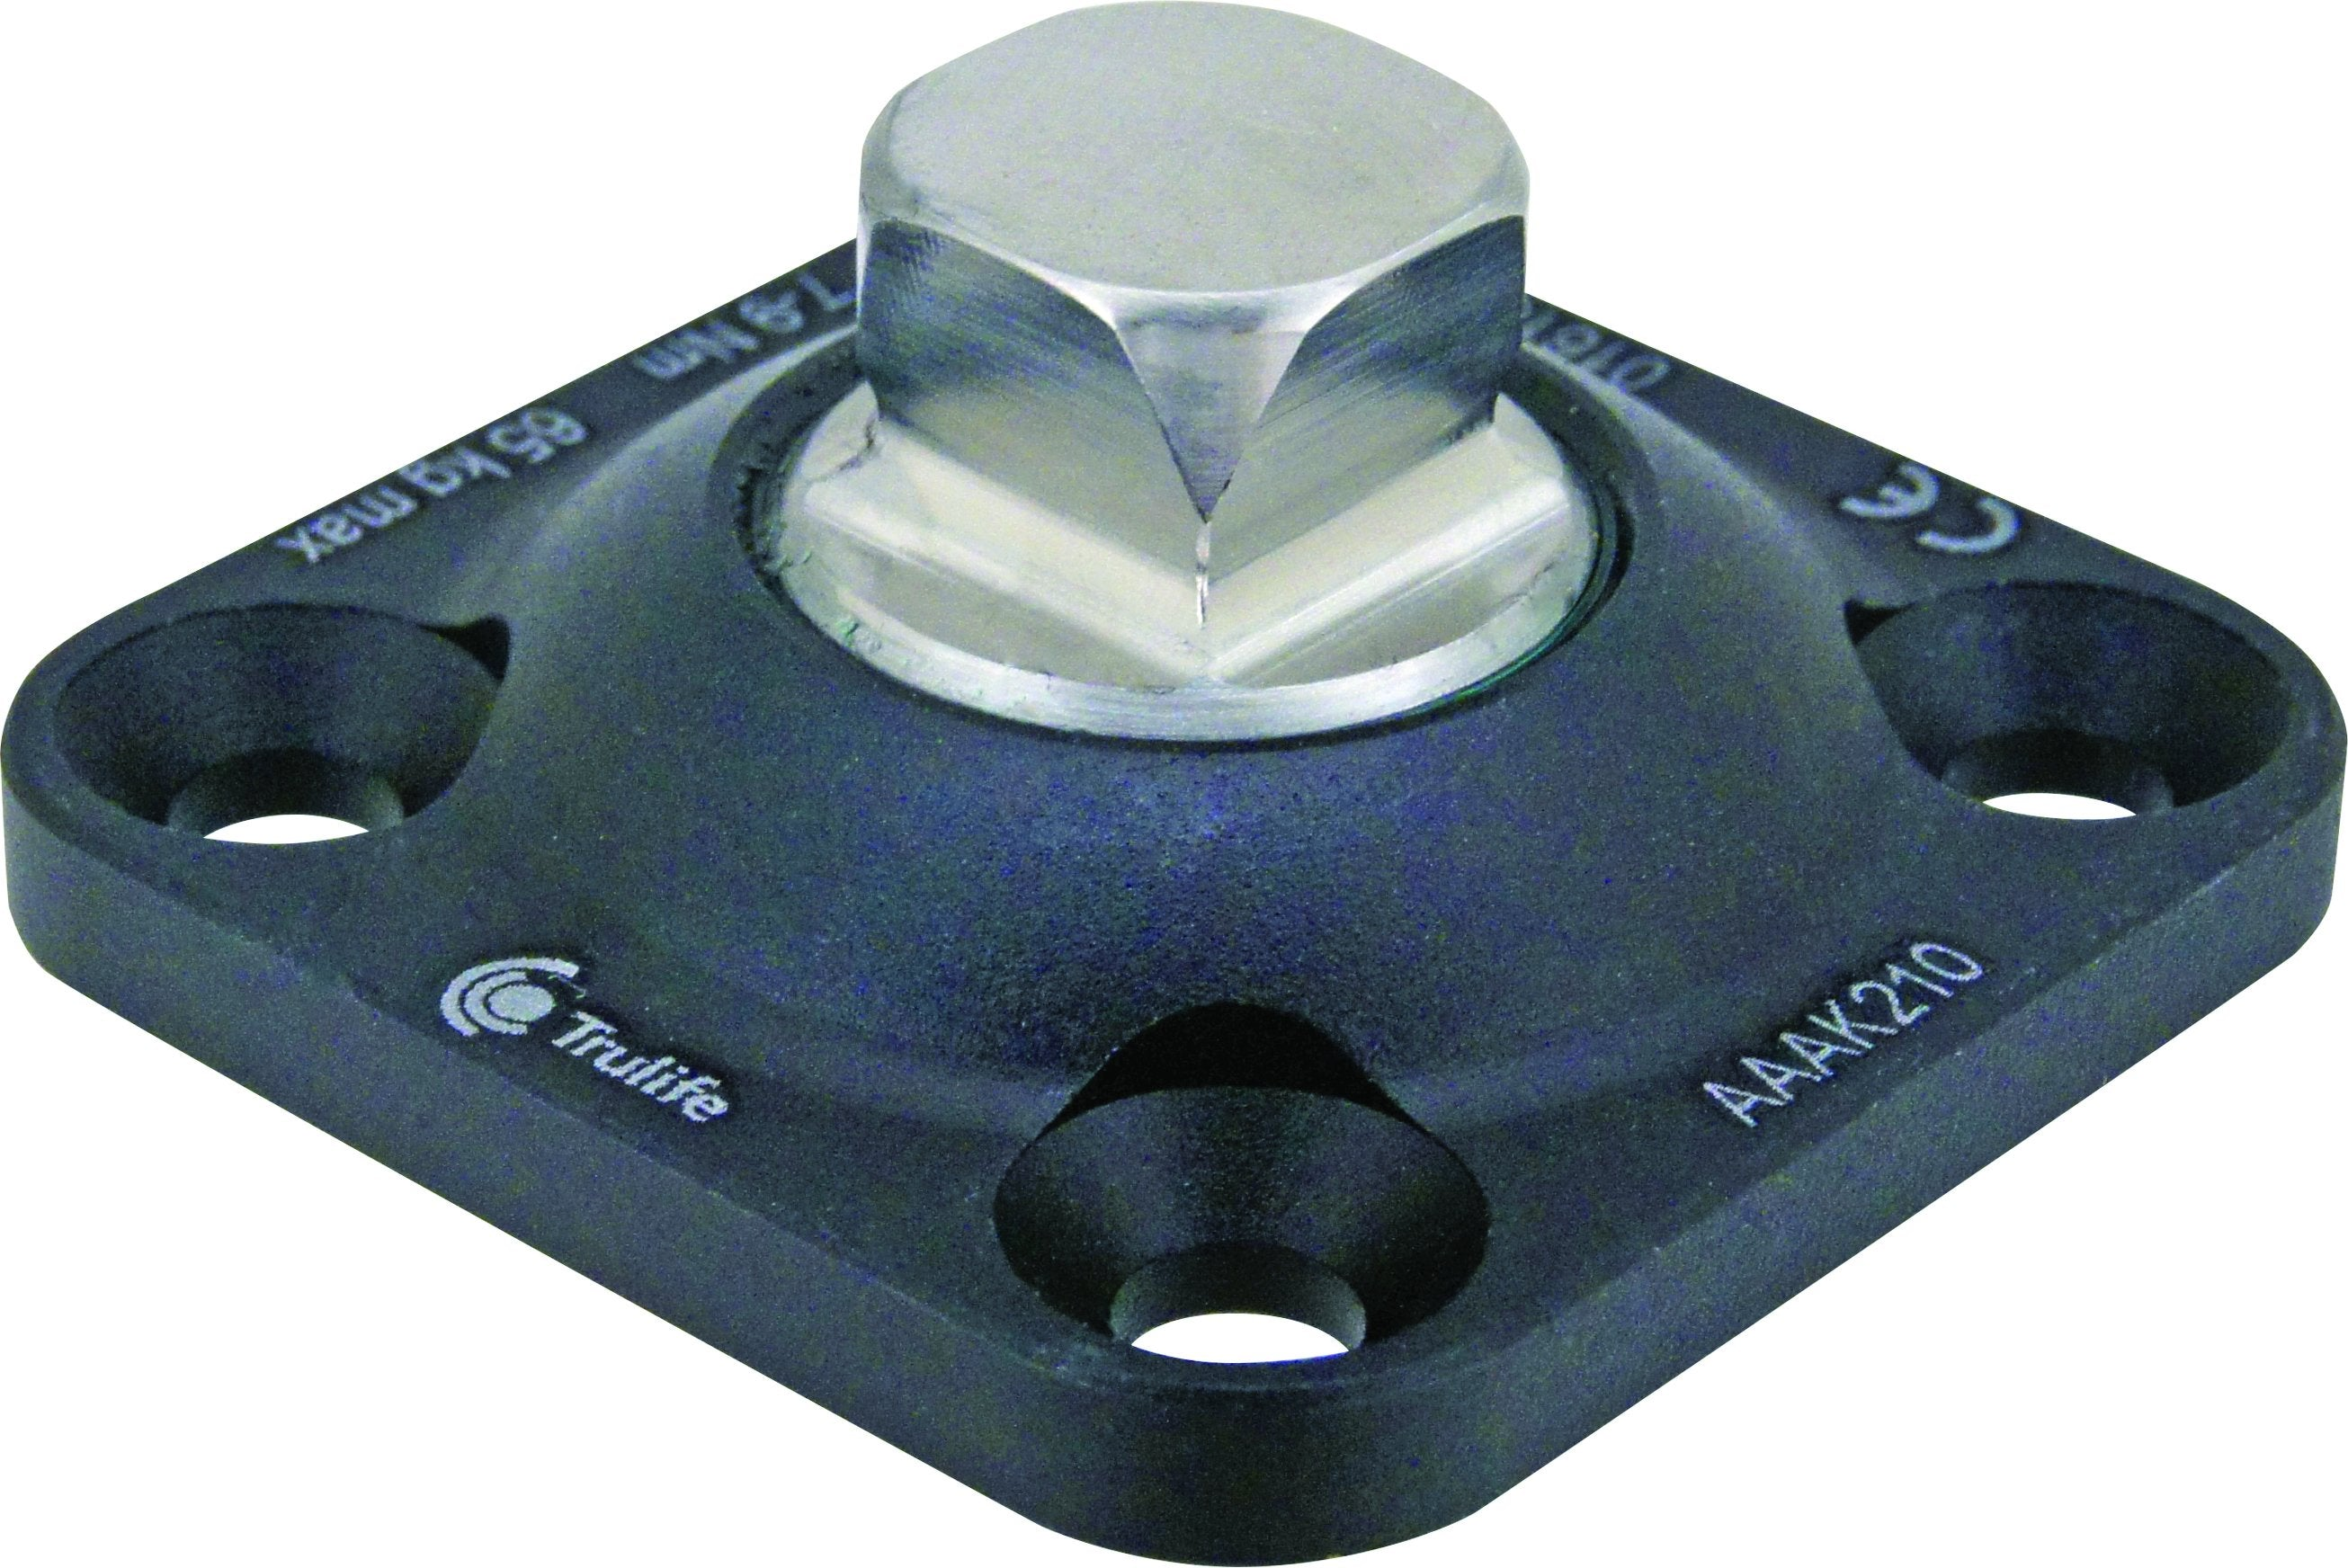 AAAK210 Child's Play 4-Hole Pyramid Adapter